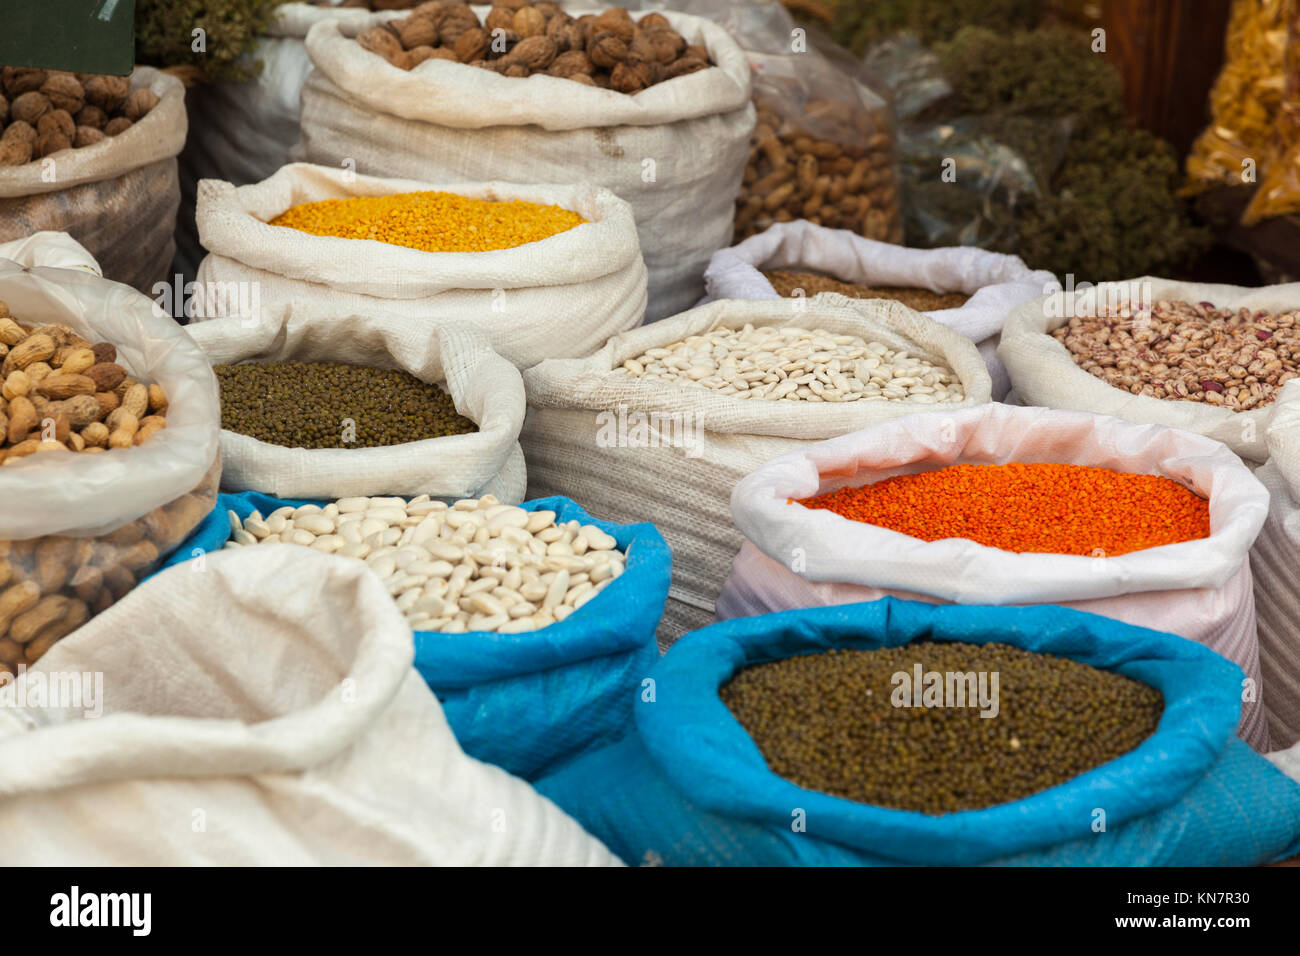 Sacks full of legumes, in an open air market in Vytina, Arcadia region, Peloponnese, Greece. - Stock Image